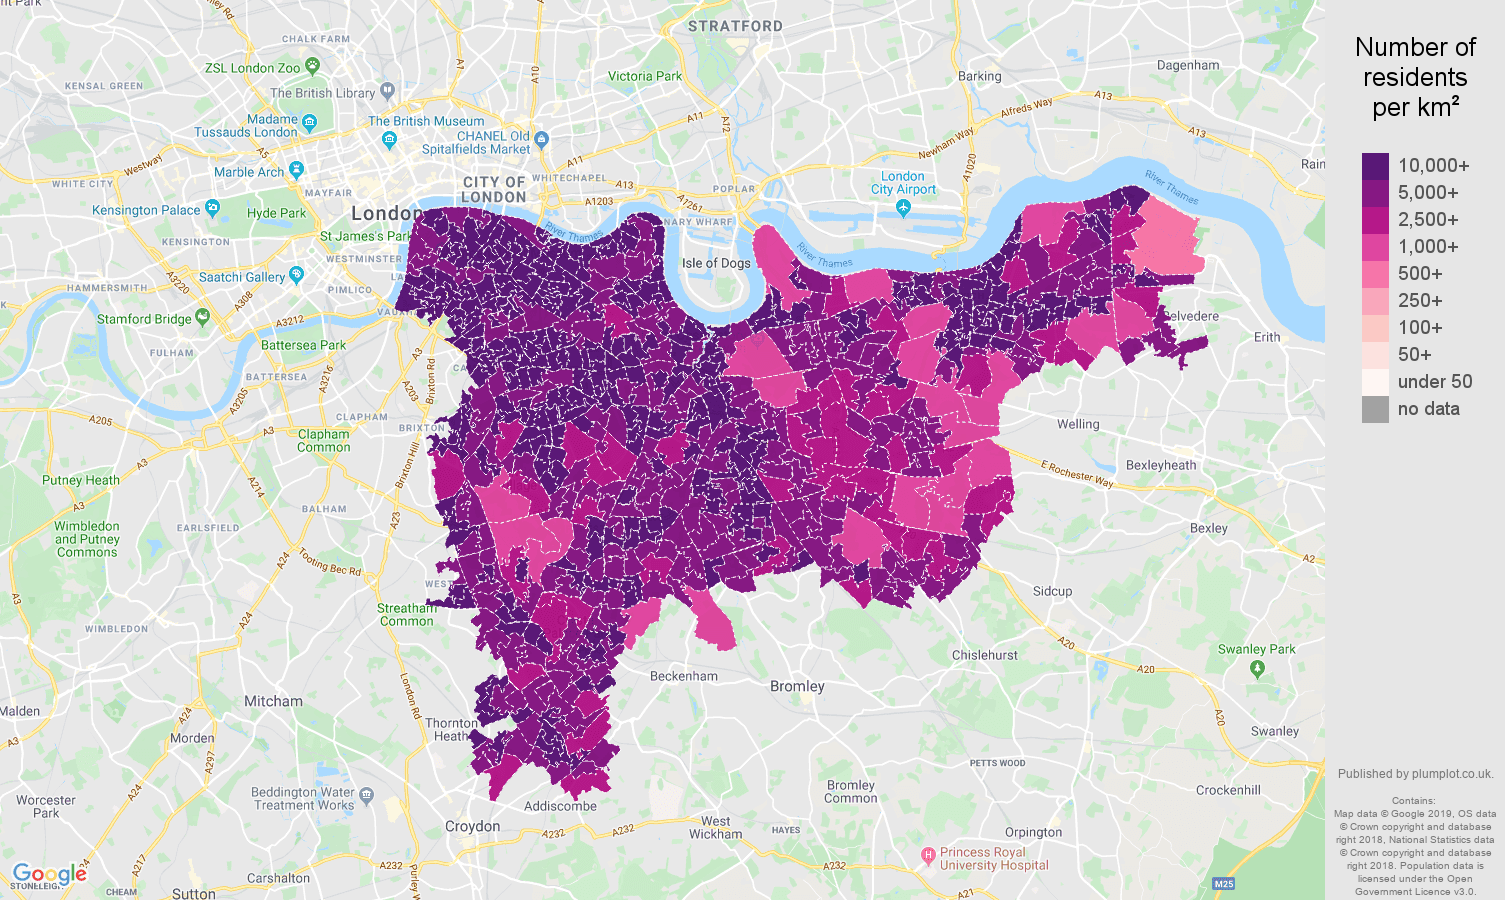 south east london population density map